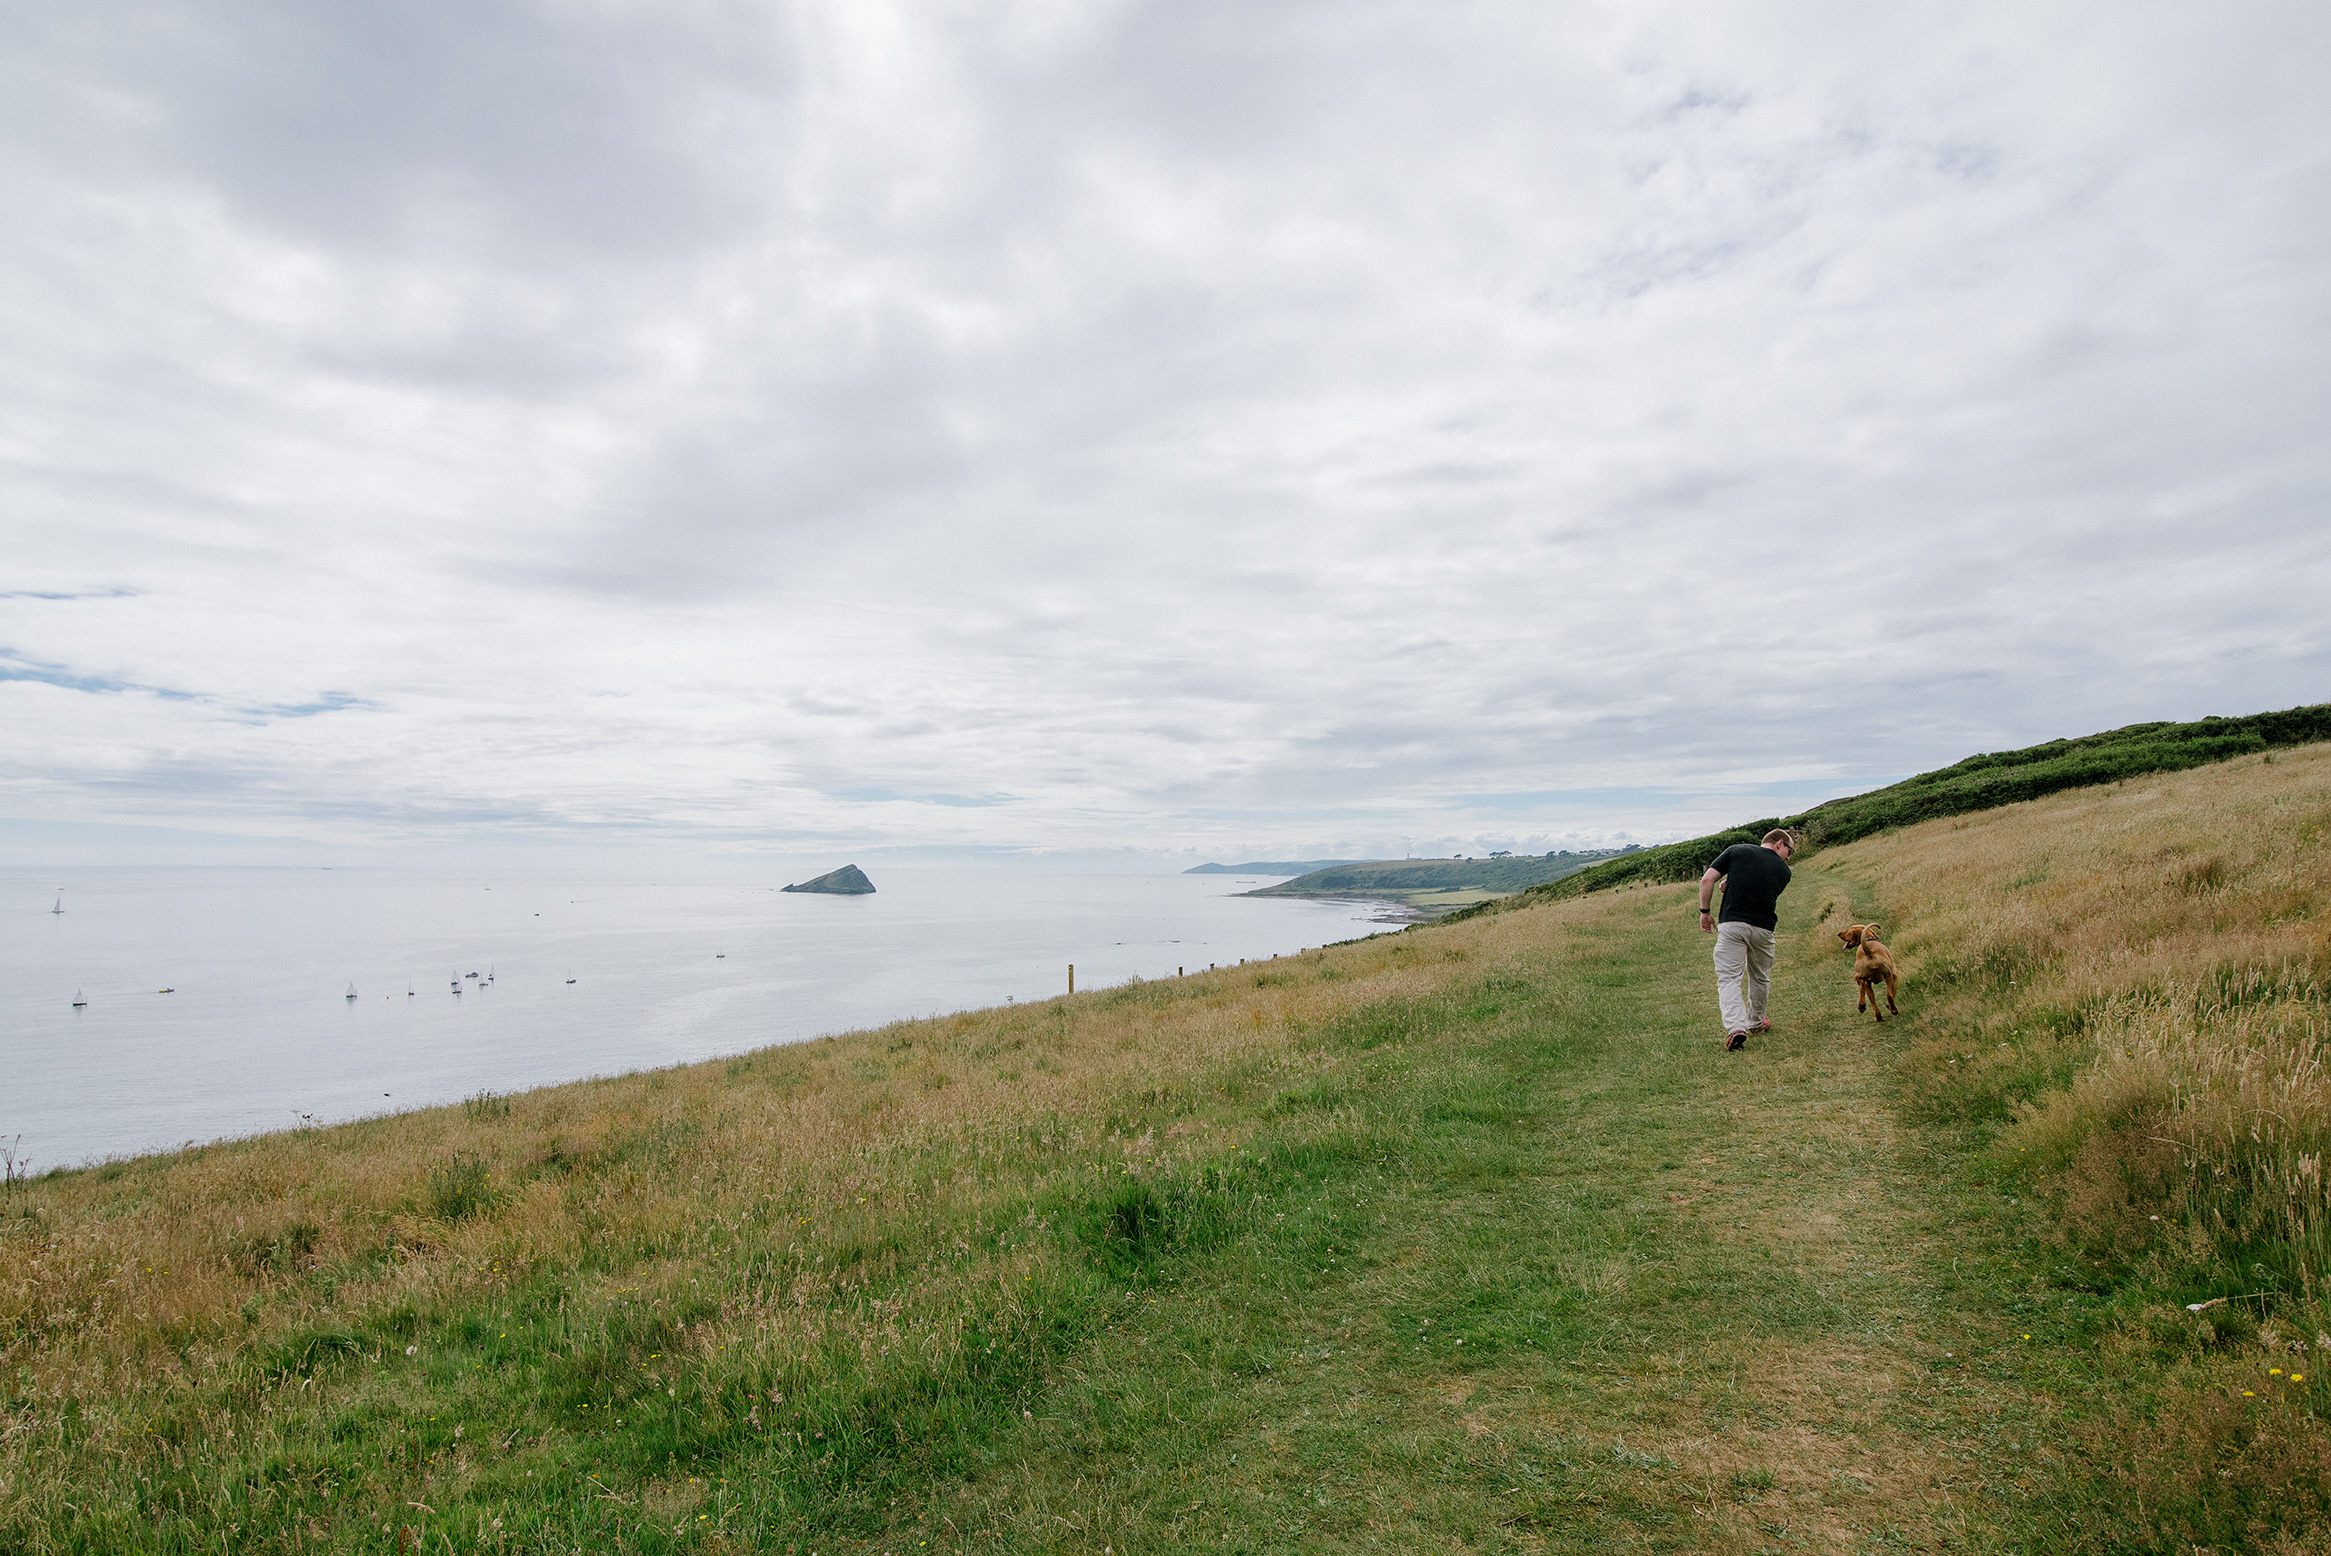 A man and (not) his dog along the British coastline